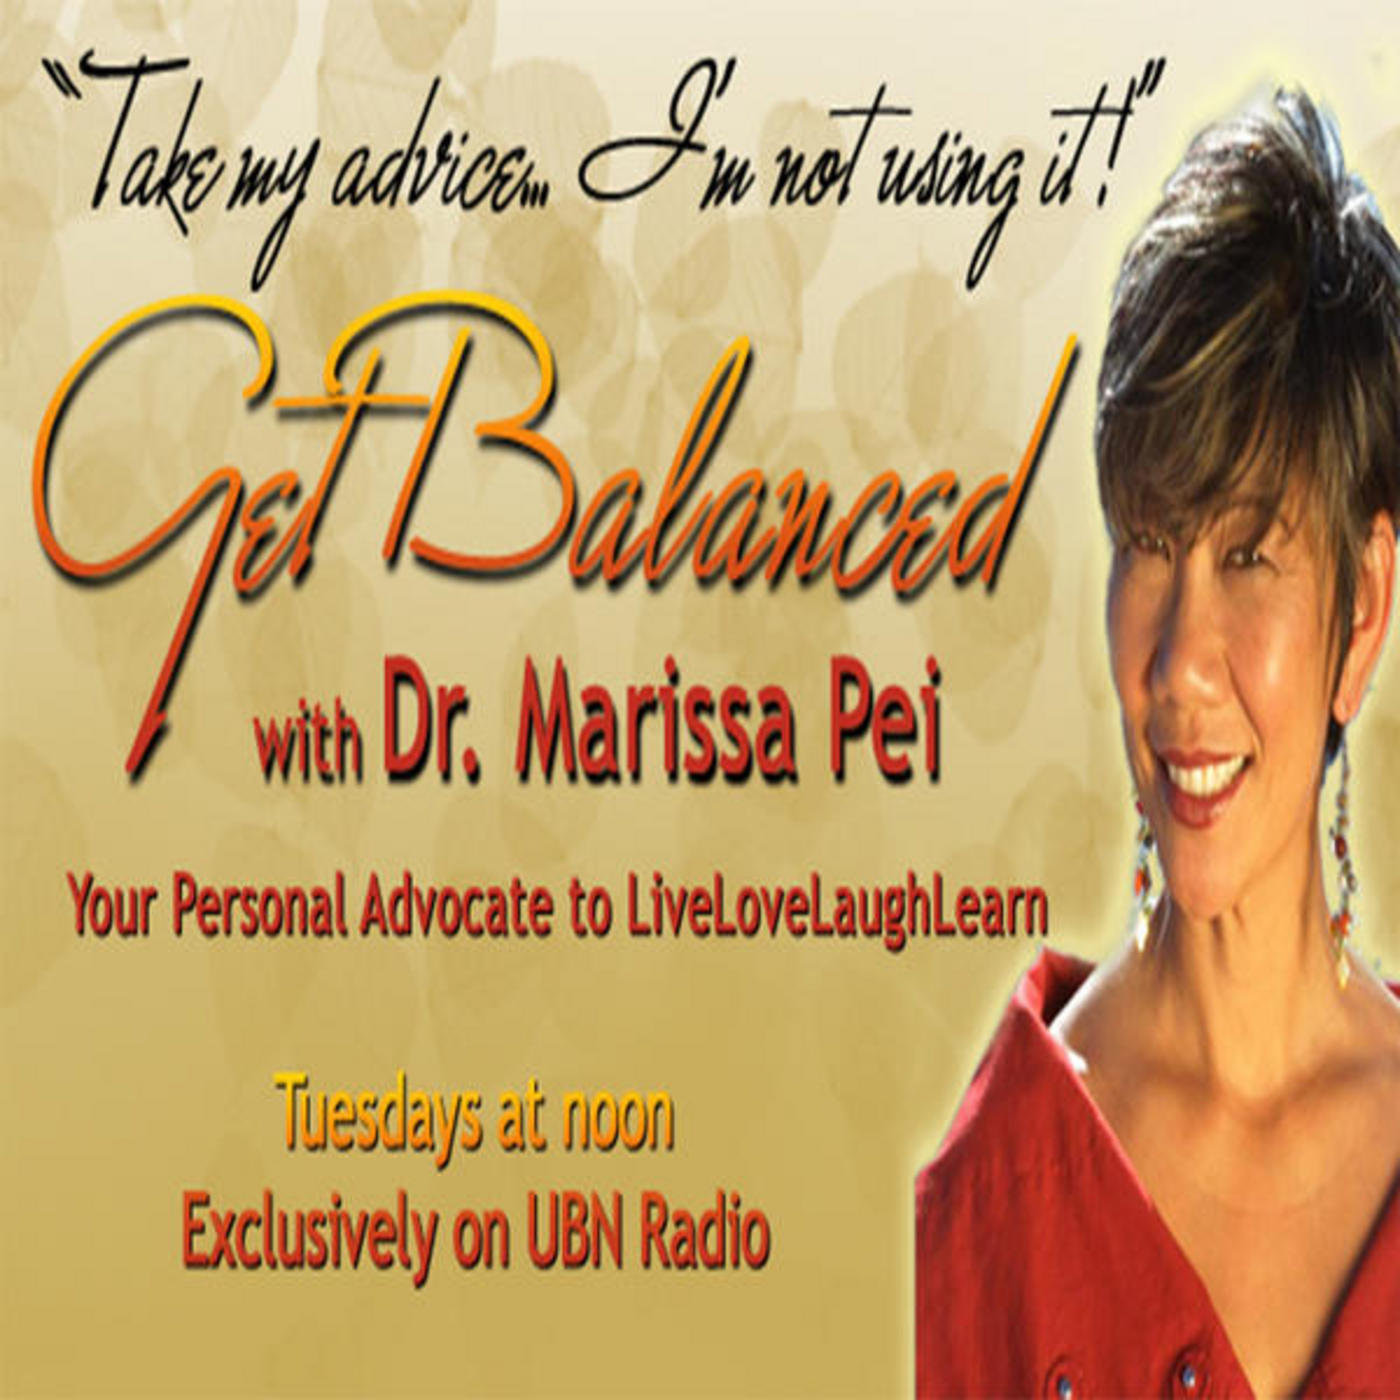 Dr. Marissa gives Advice for Control Freaks and Perfectionists